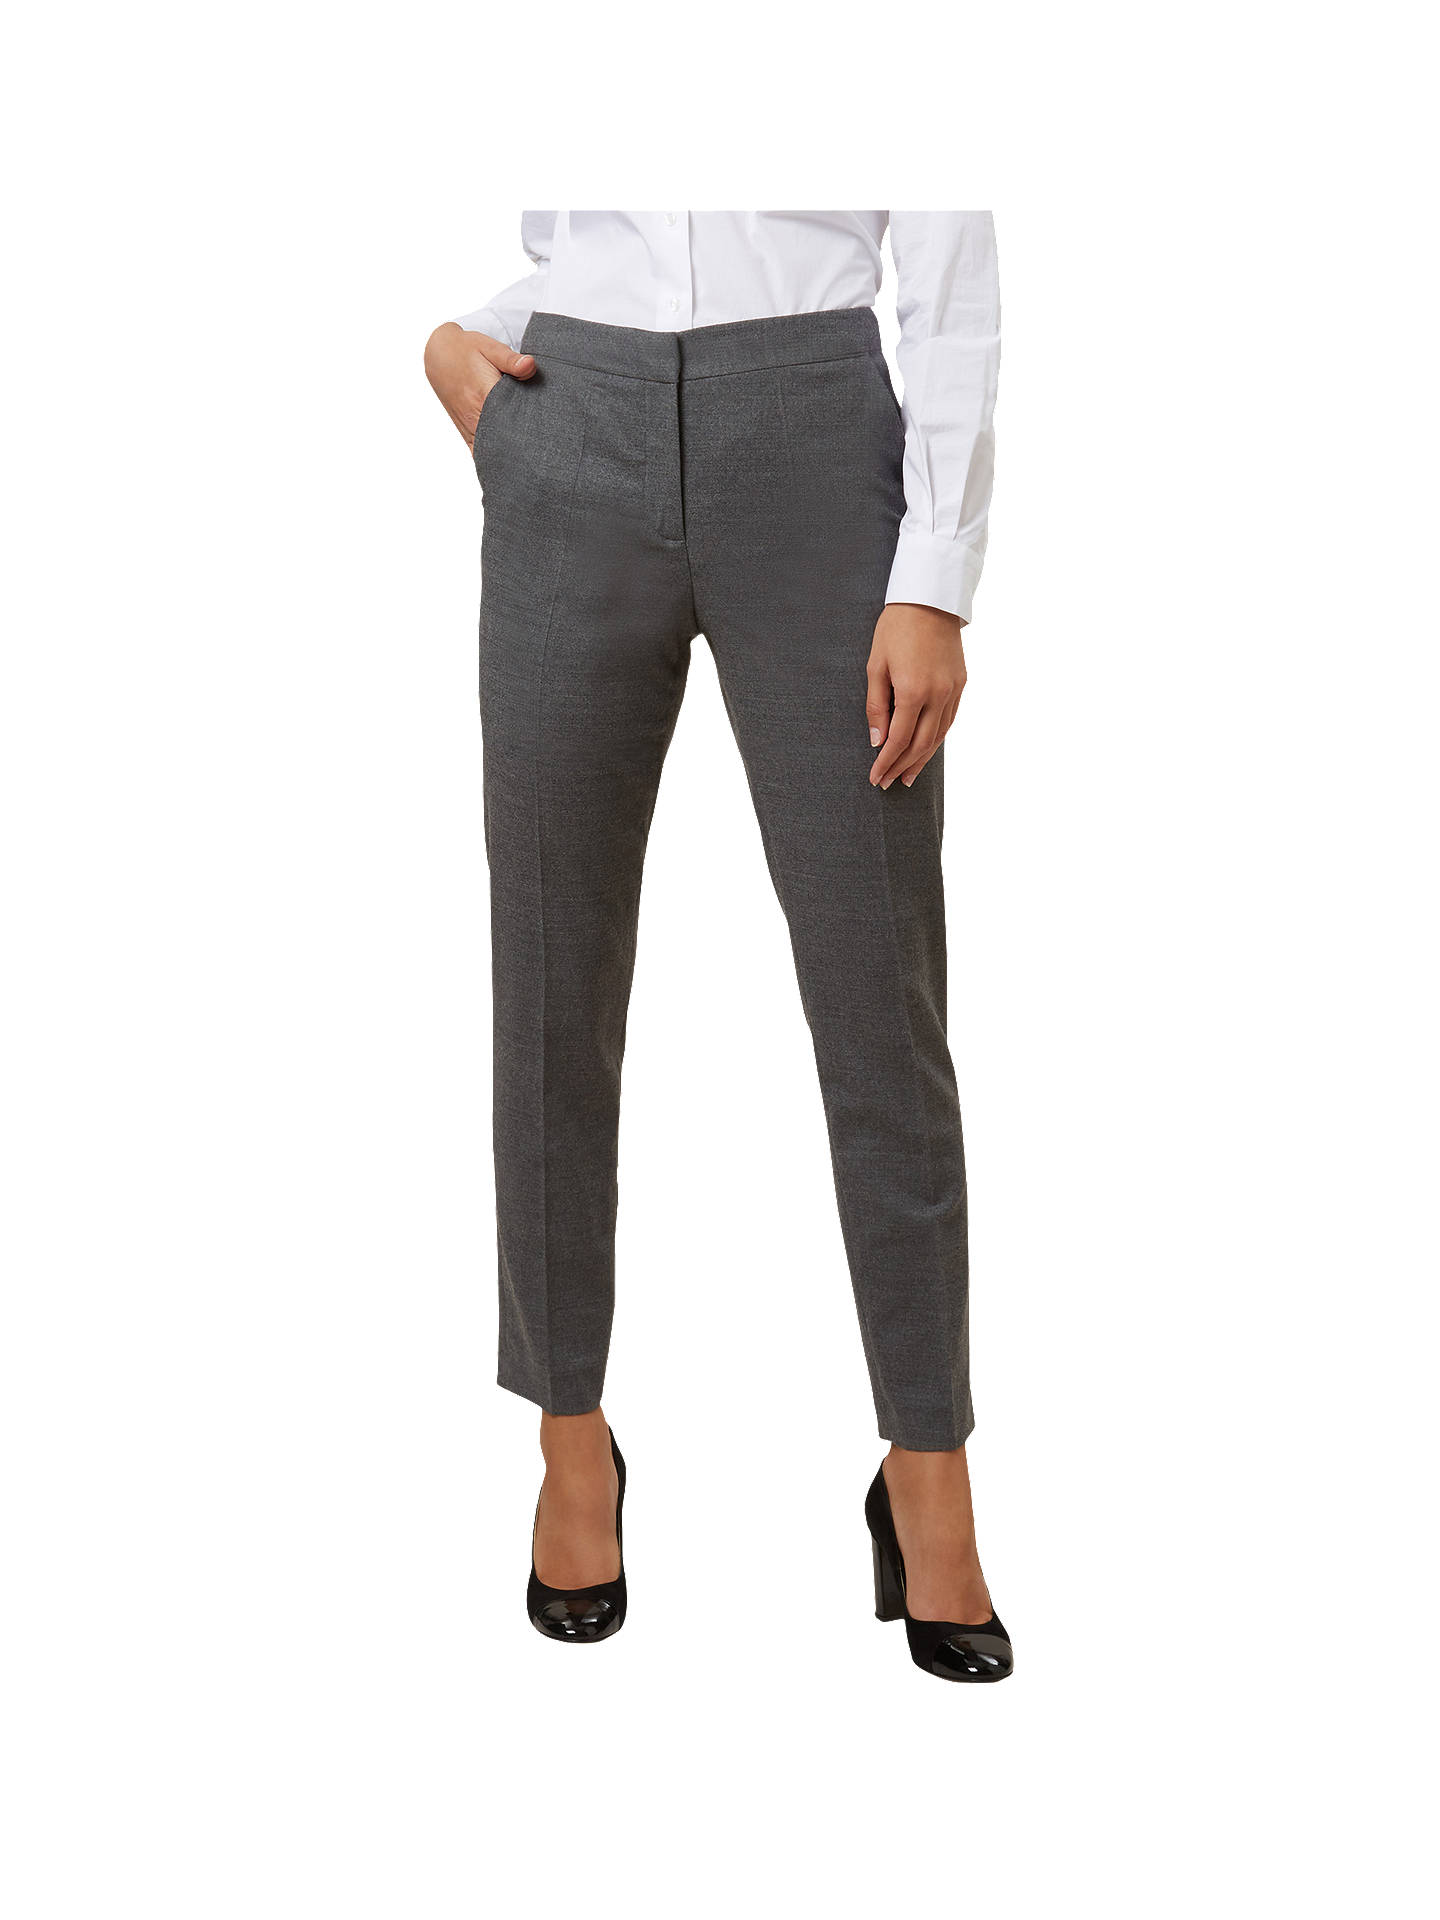 BuyHobbs Gael Tailored Trousers, Grey, 18 Online at johnlewis.com